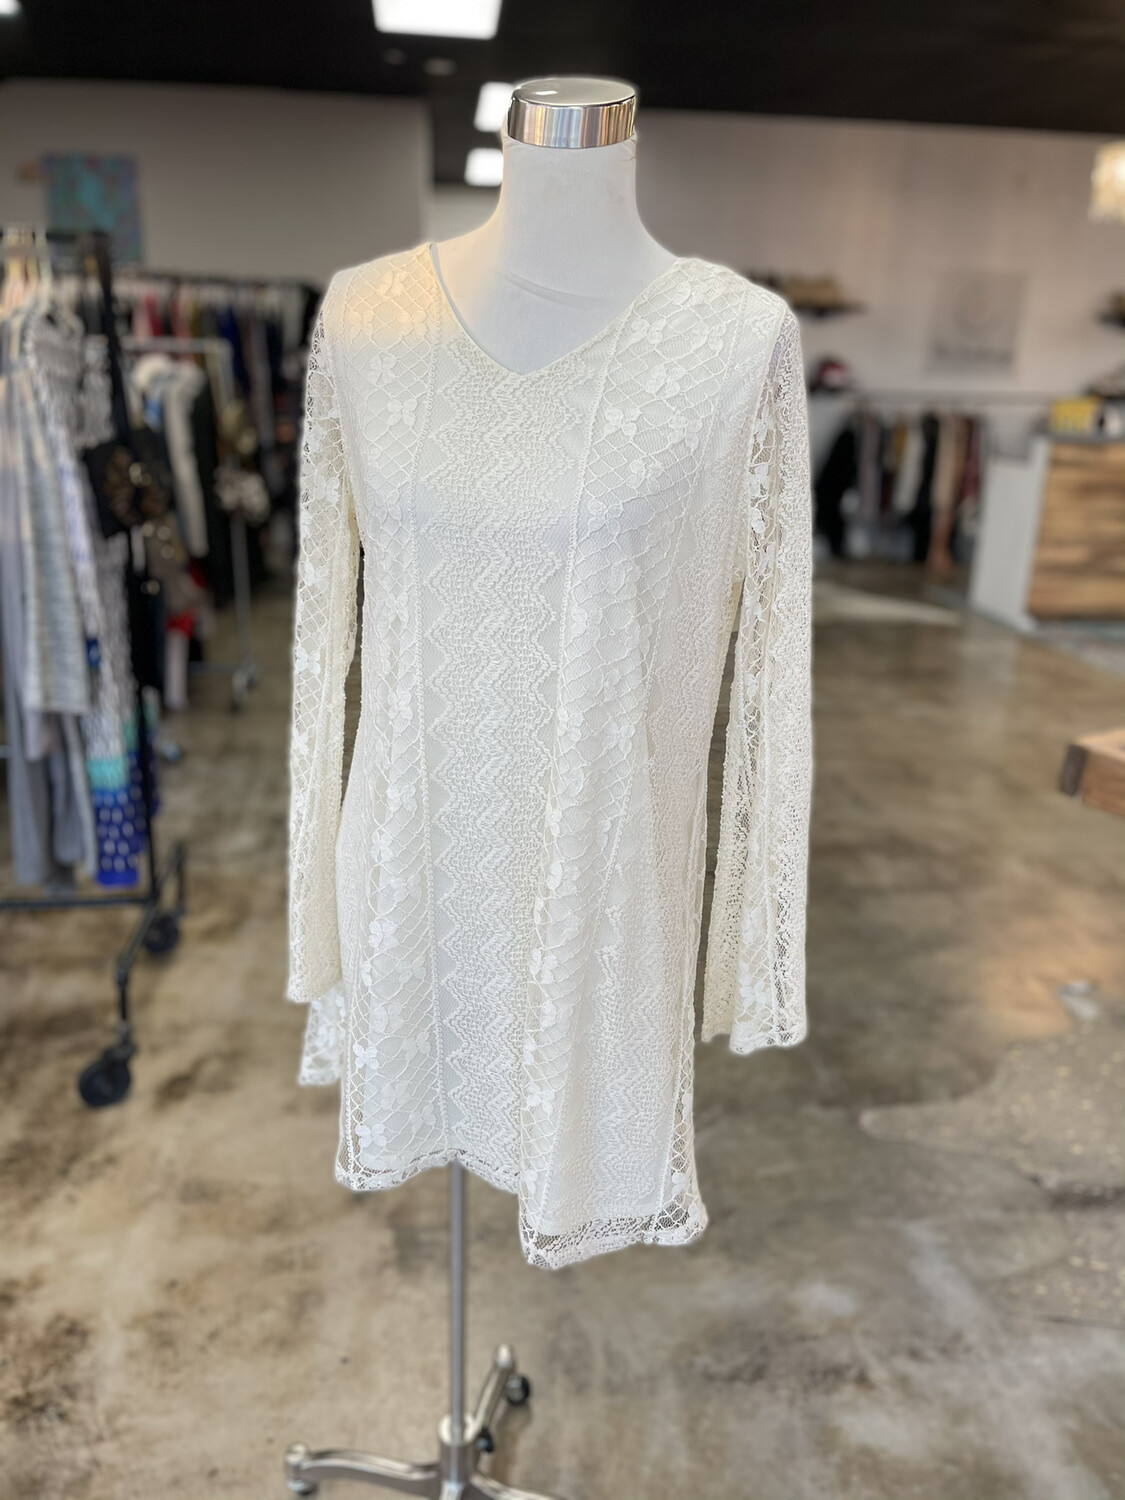 Red Camel White Lace Dress - XL